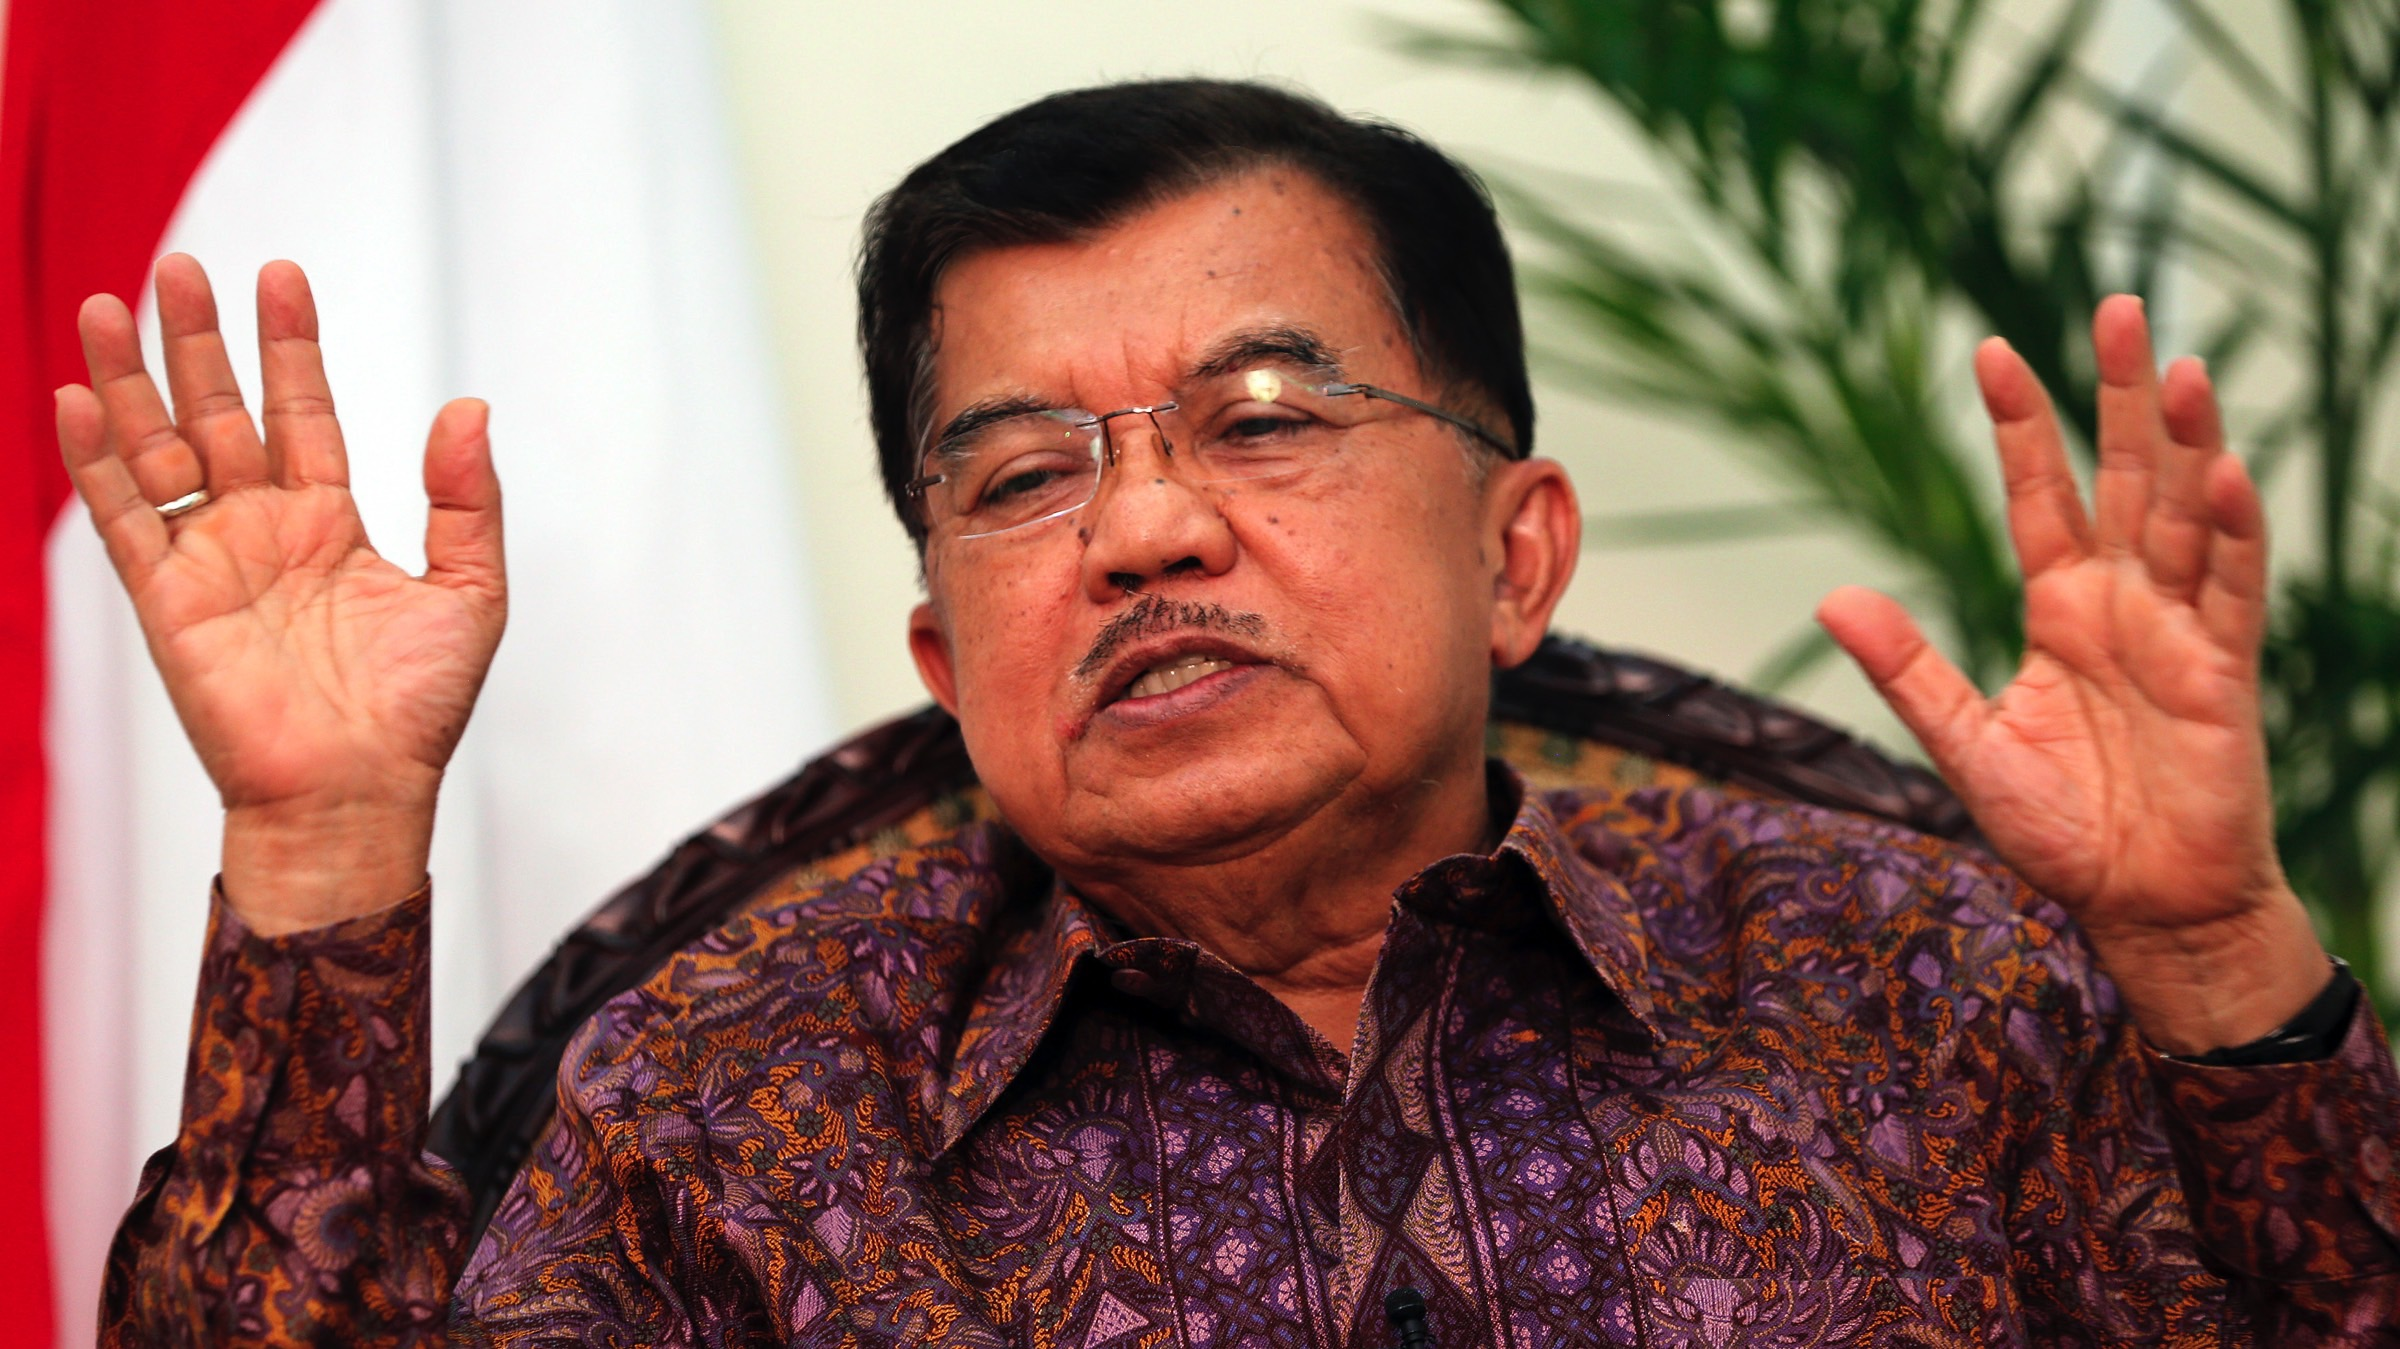 Indonesia's Vice President Jusuf Kalla gestures during an interview at the vice presidential palace in Jakarta